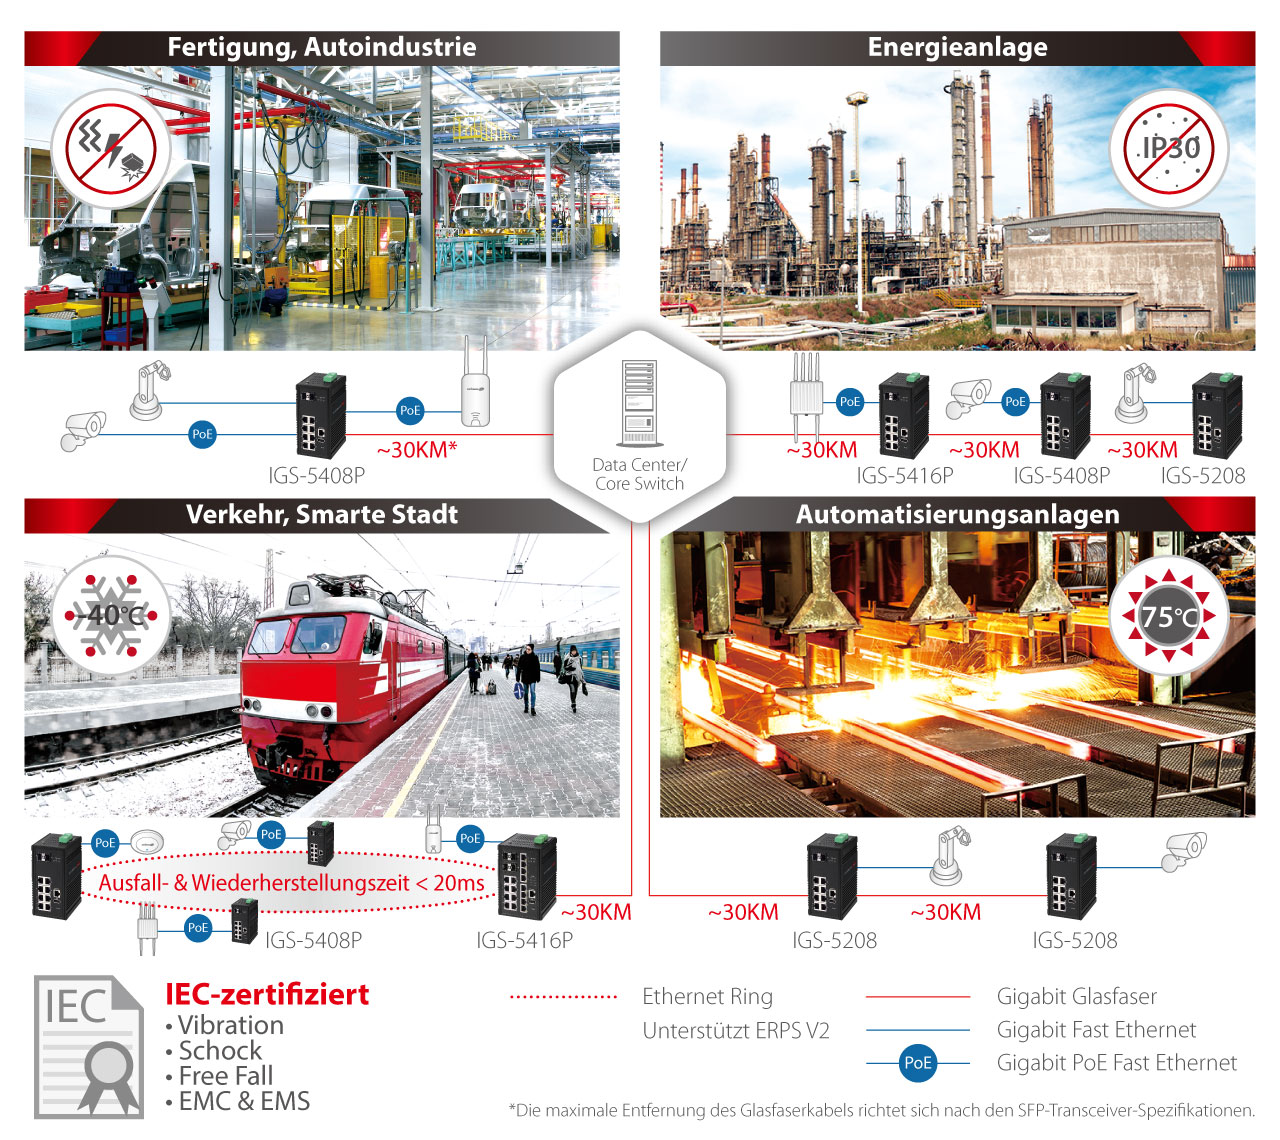 Edimax Pro Industrial Switch, robust, durable, rugged, ruggedized, manufacturing, automotive, energy plant, transportation, smart city, factory automotation